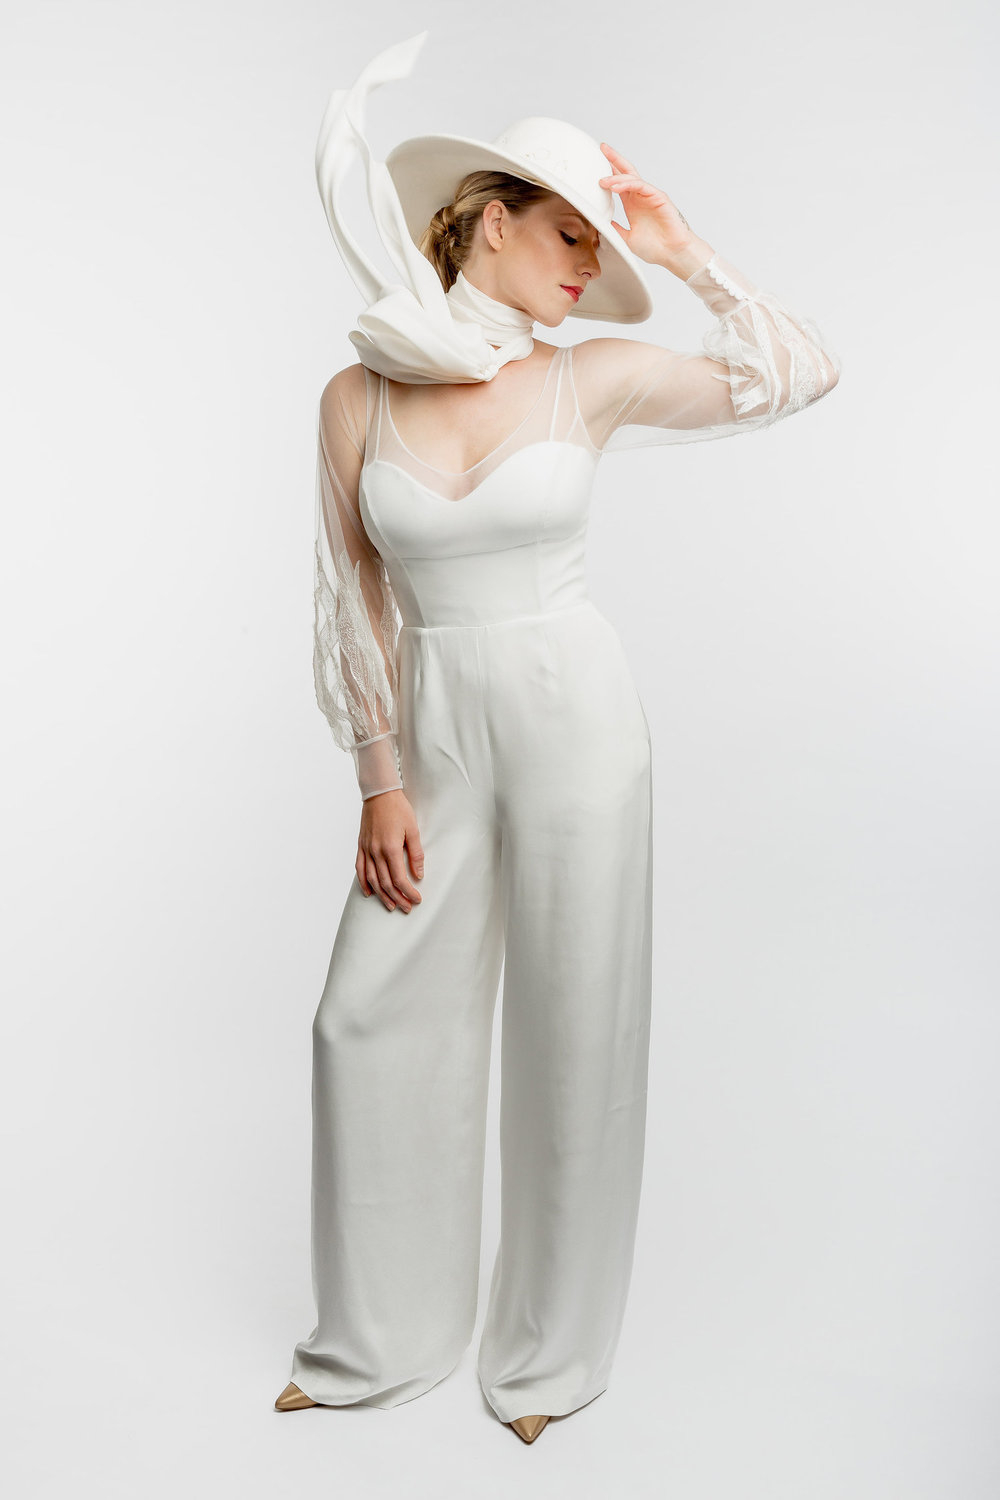 Modehaus Florence | wedding pantsuit with a scarf and hat | sweetheart neckline | Under the Veil wedding podcast